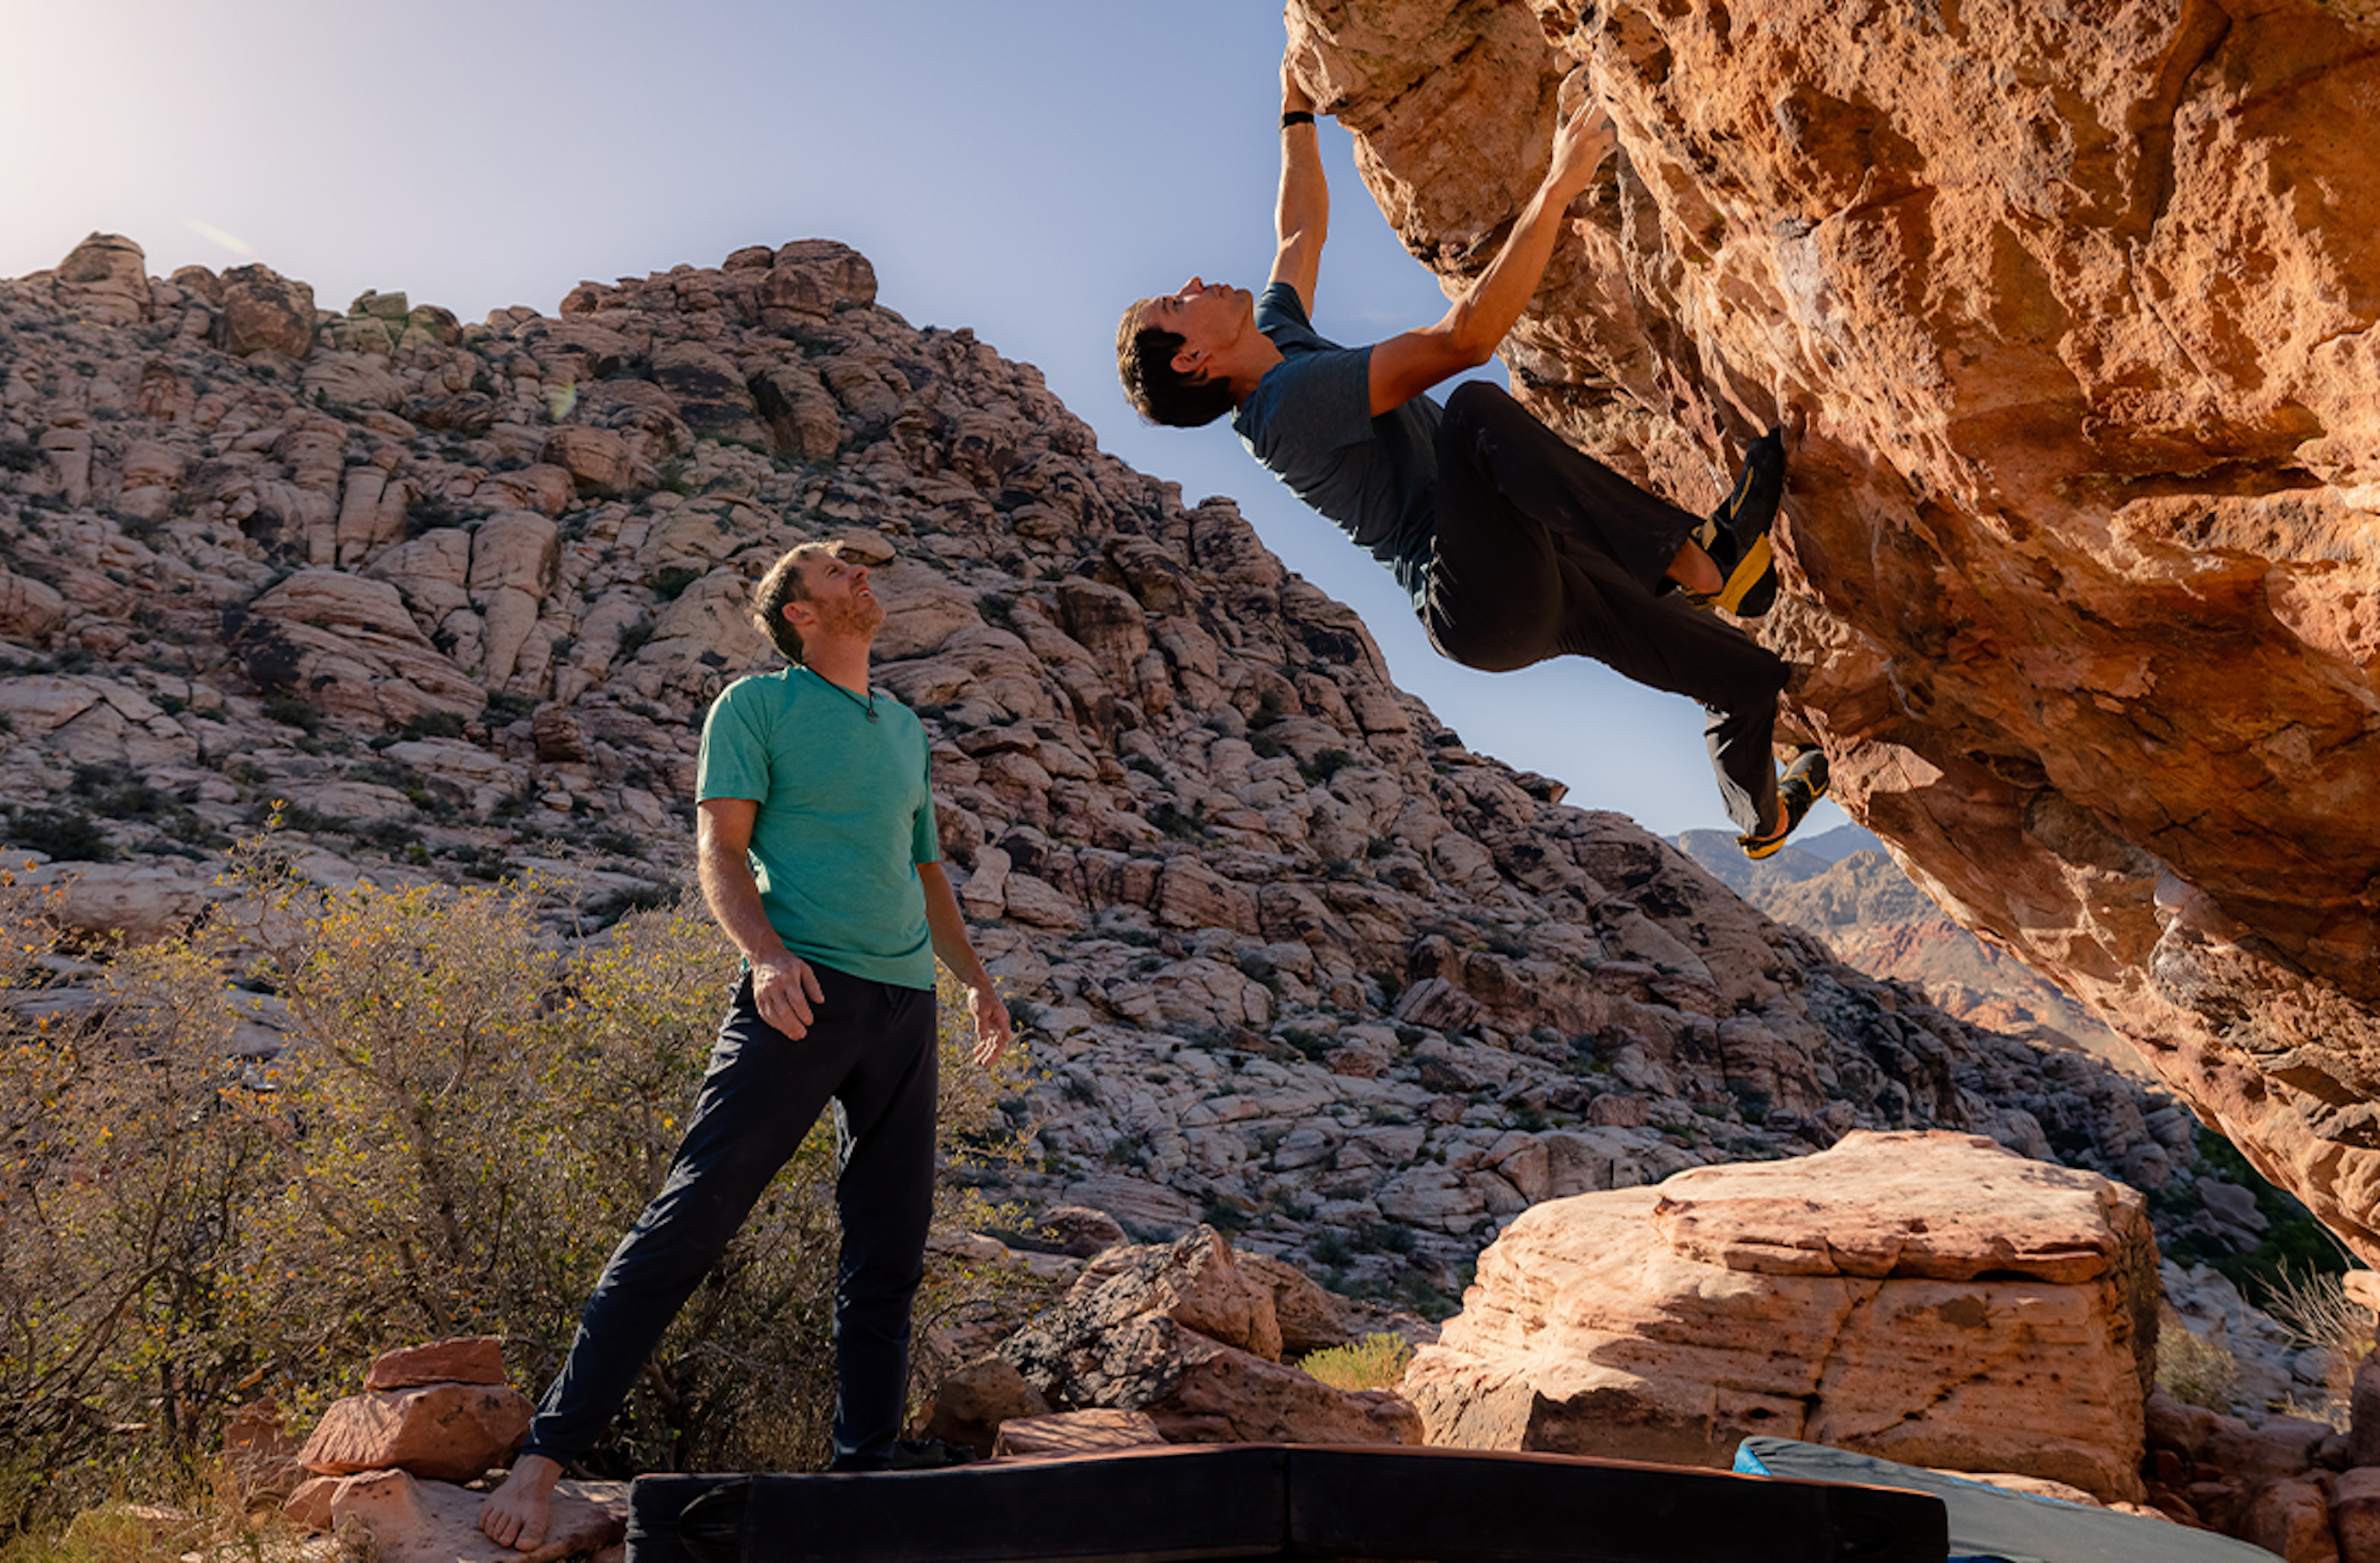 tommy caldwell and alex honnold climbing masterclass